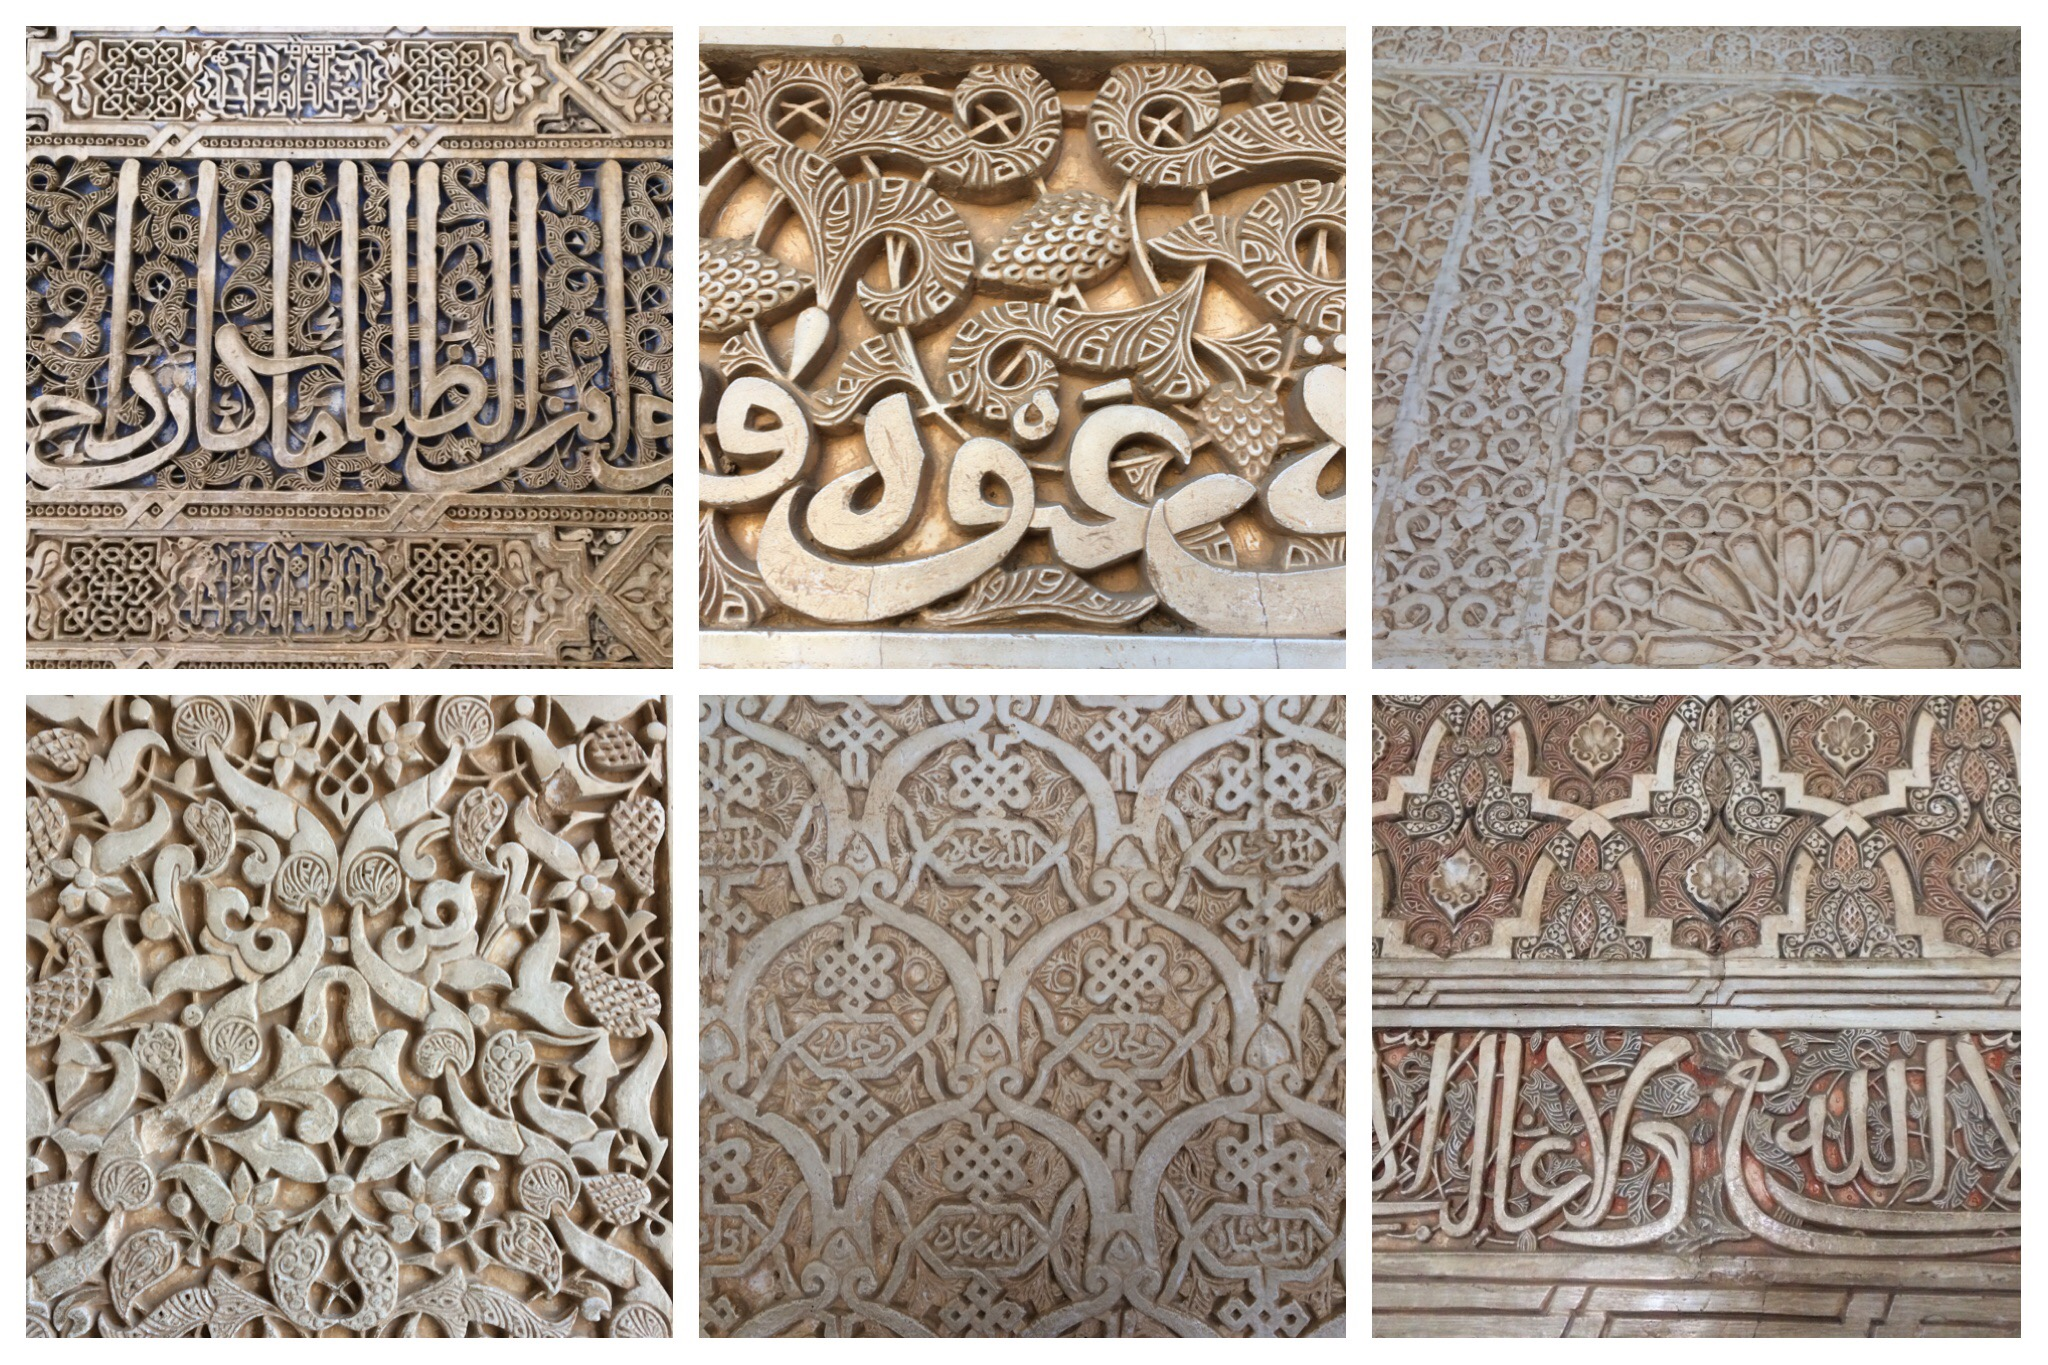 Alhambra Granada Spain - plaster stucco work